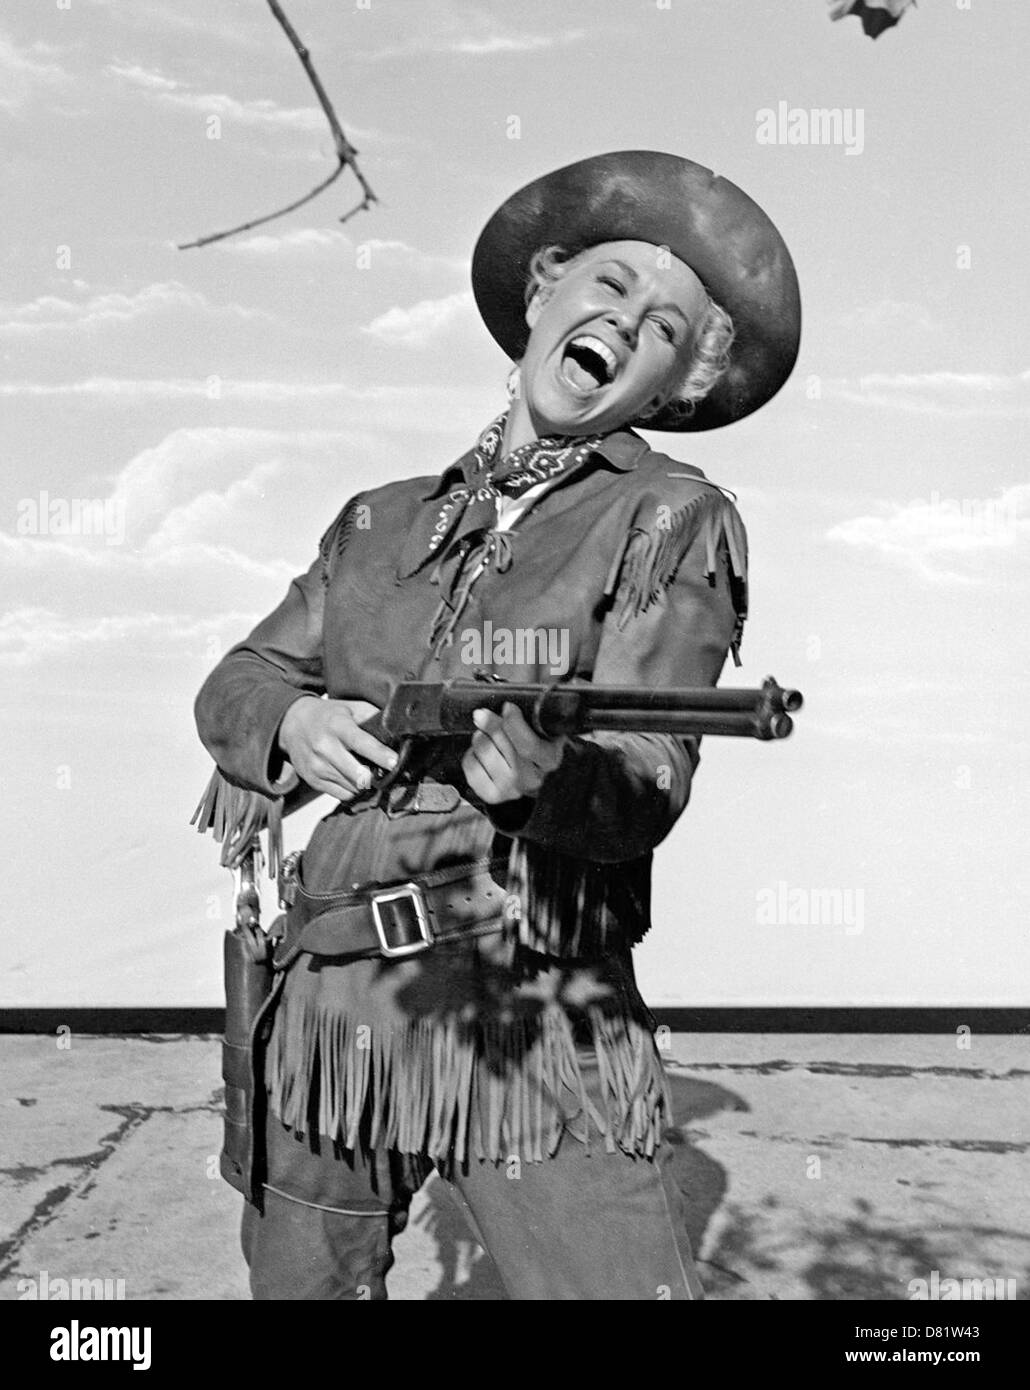 Image result for calamity jane photos